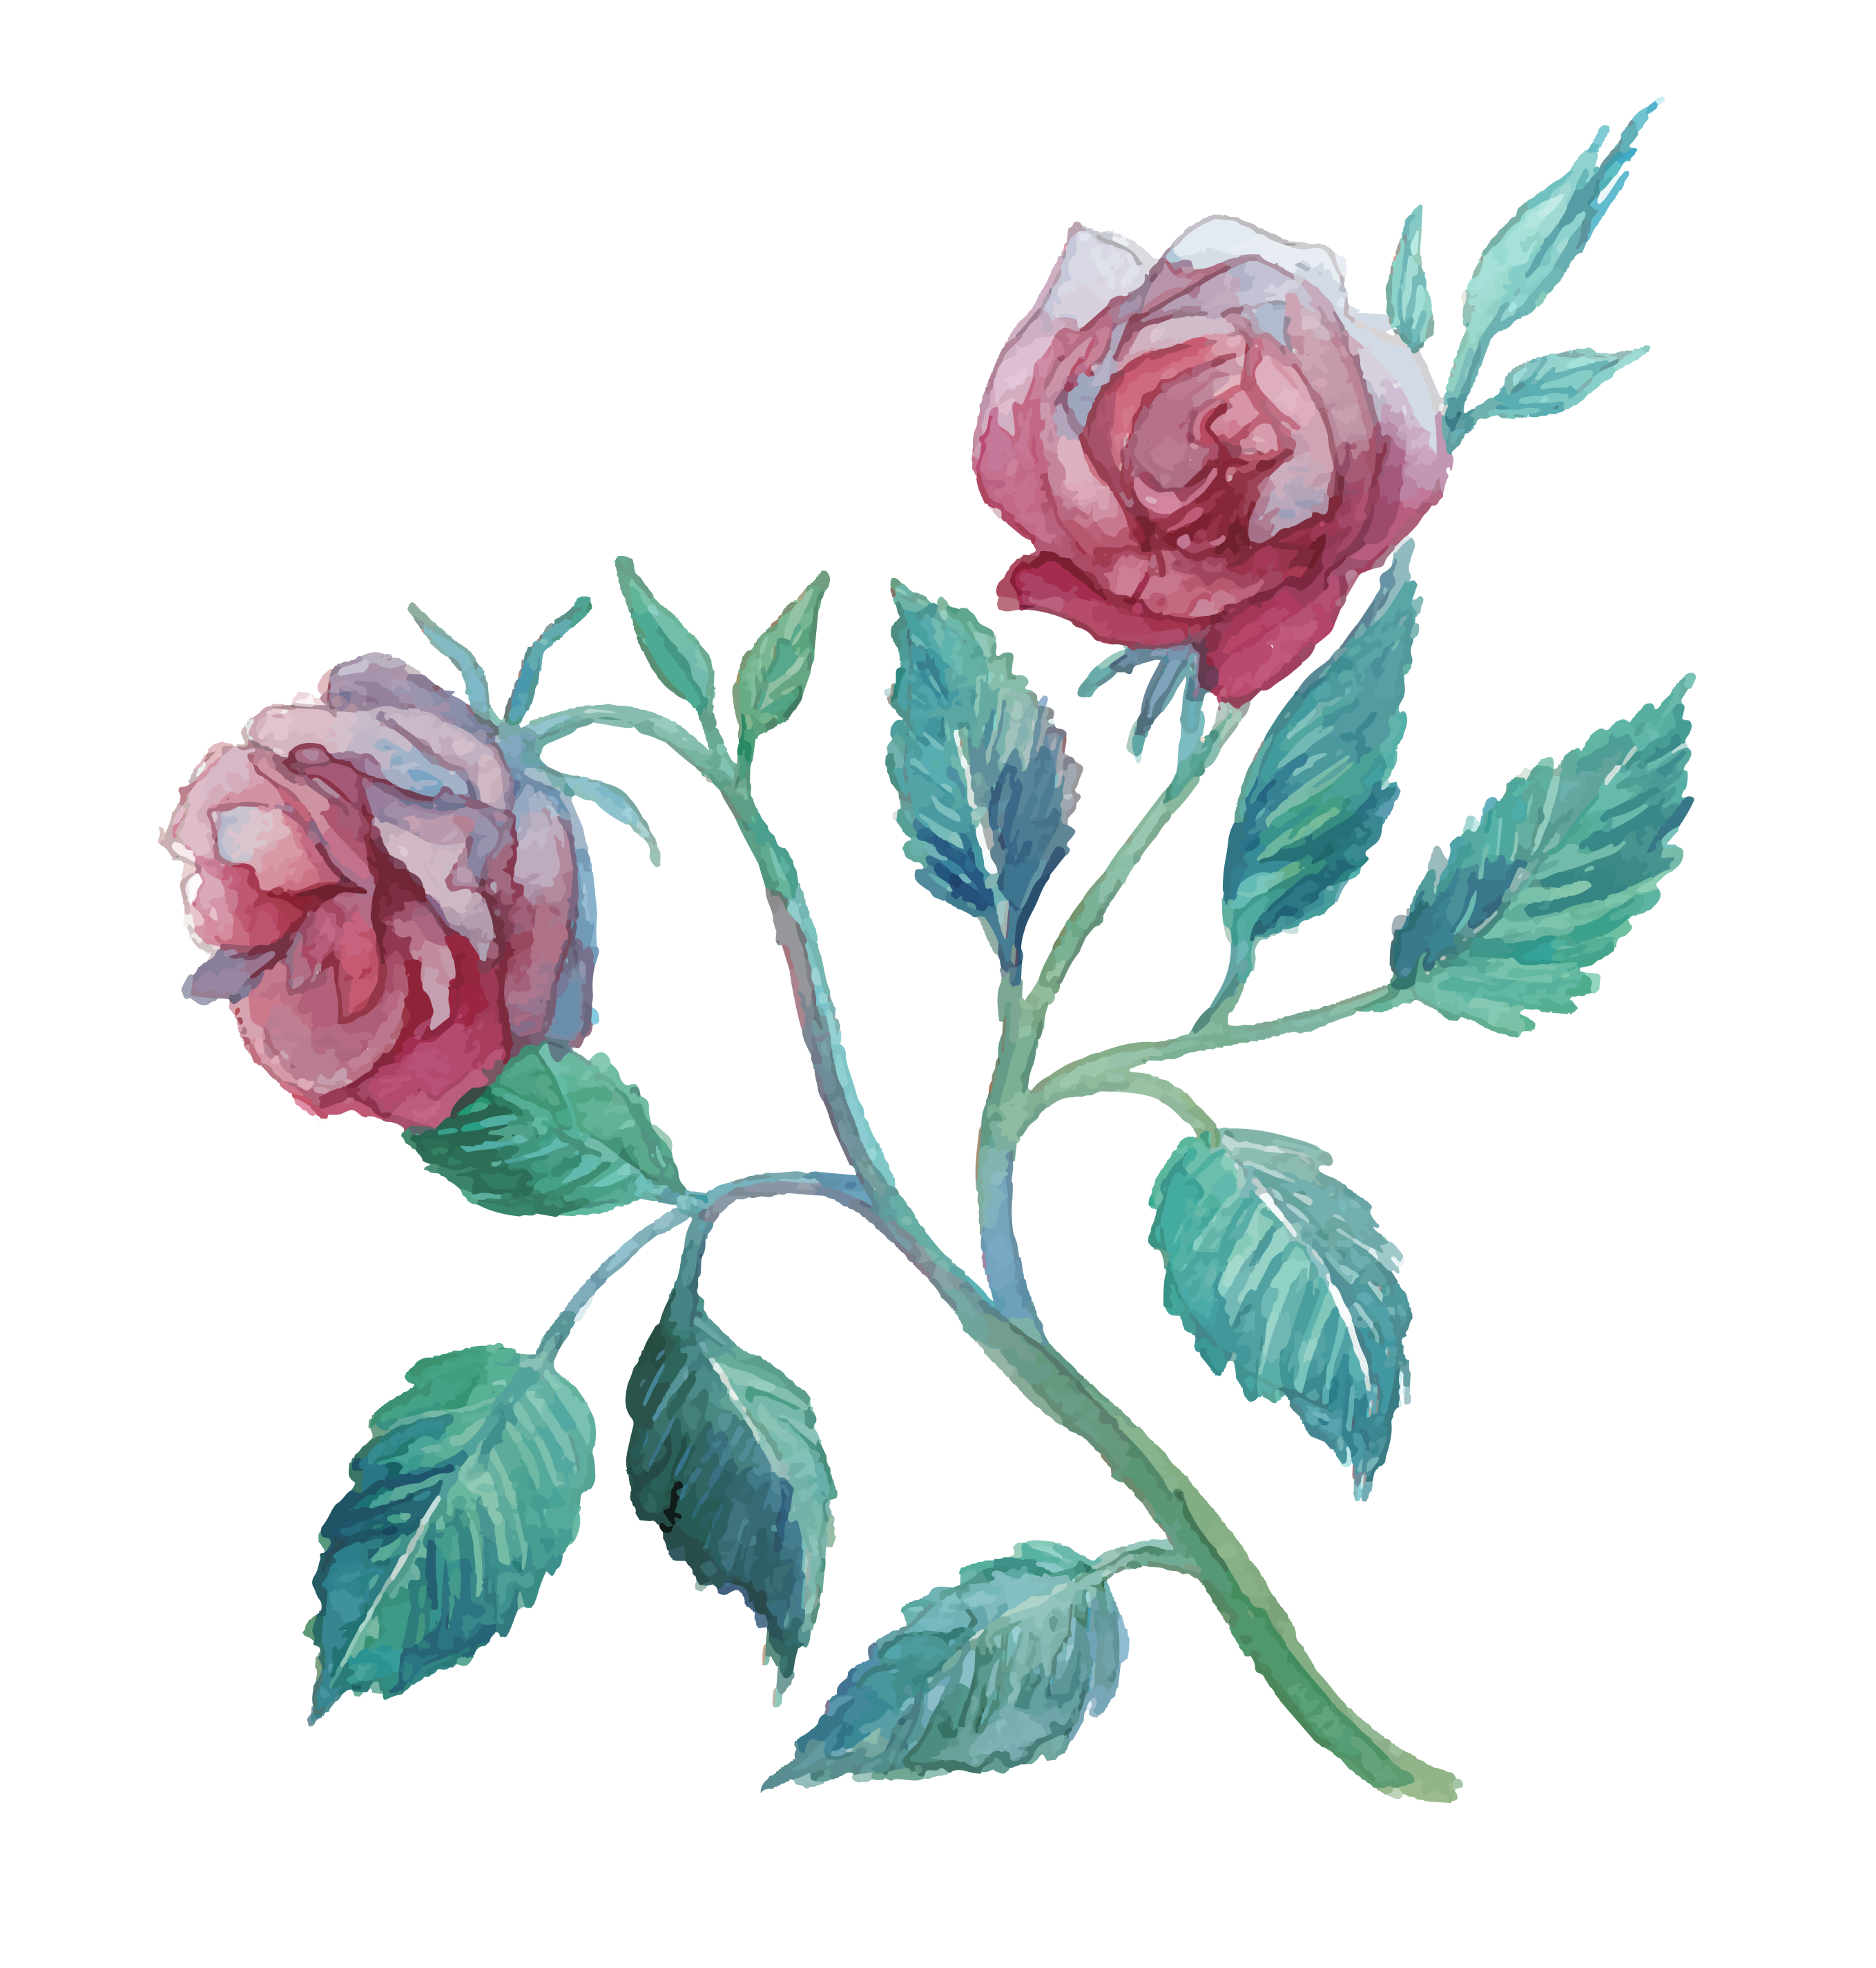 Flower watercolor painting clip. Pineapple clipart rose gold